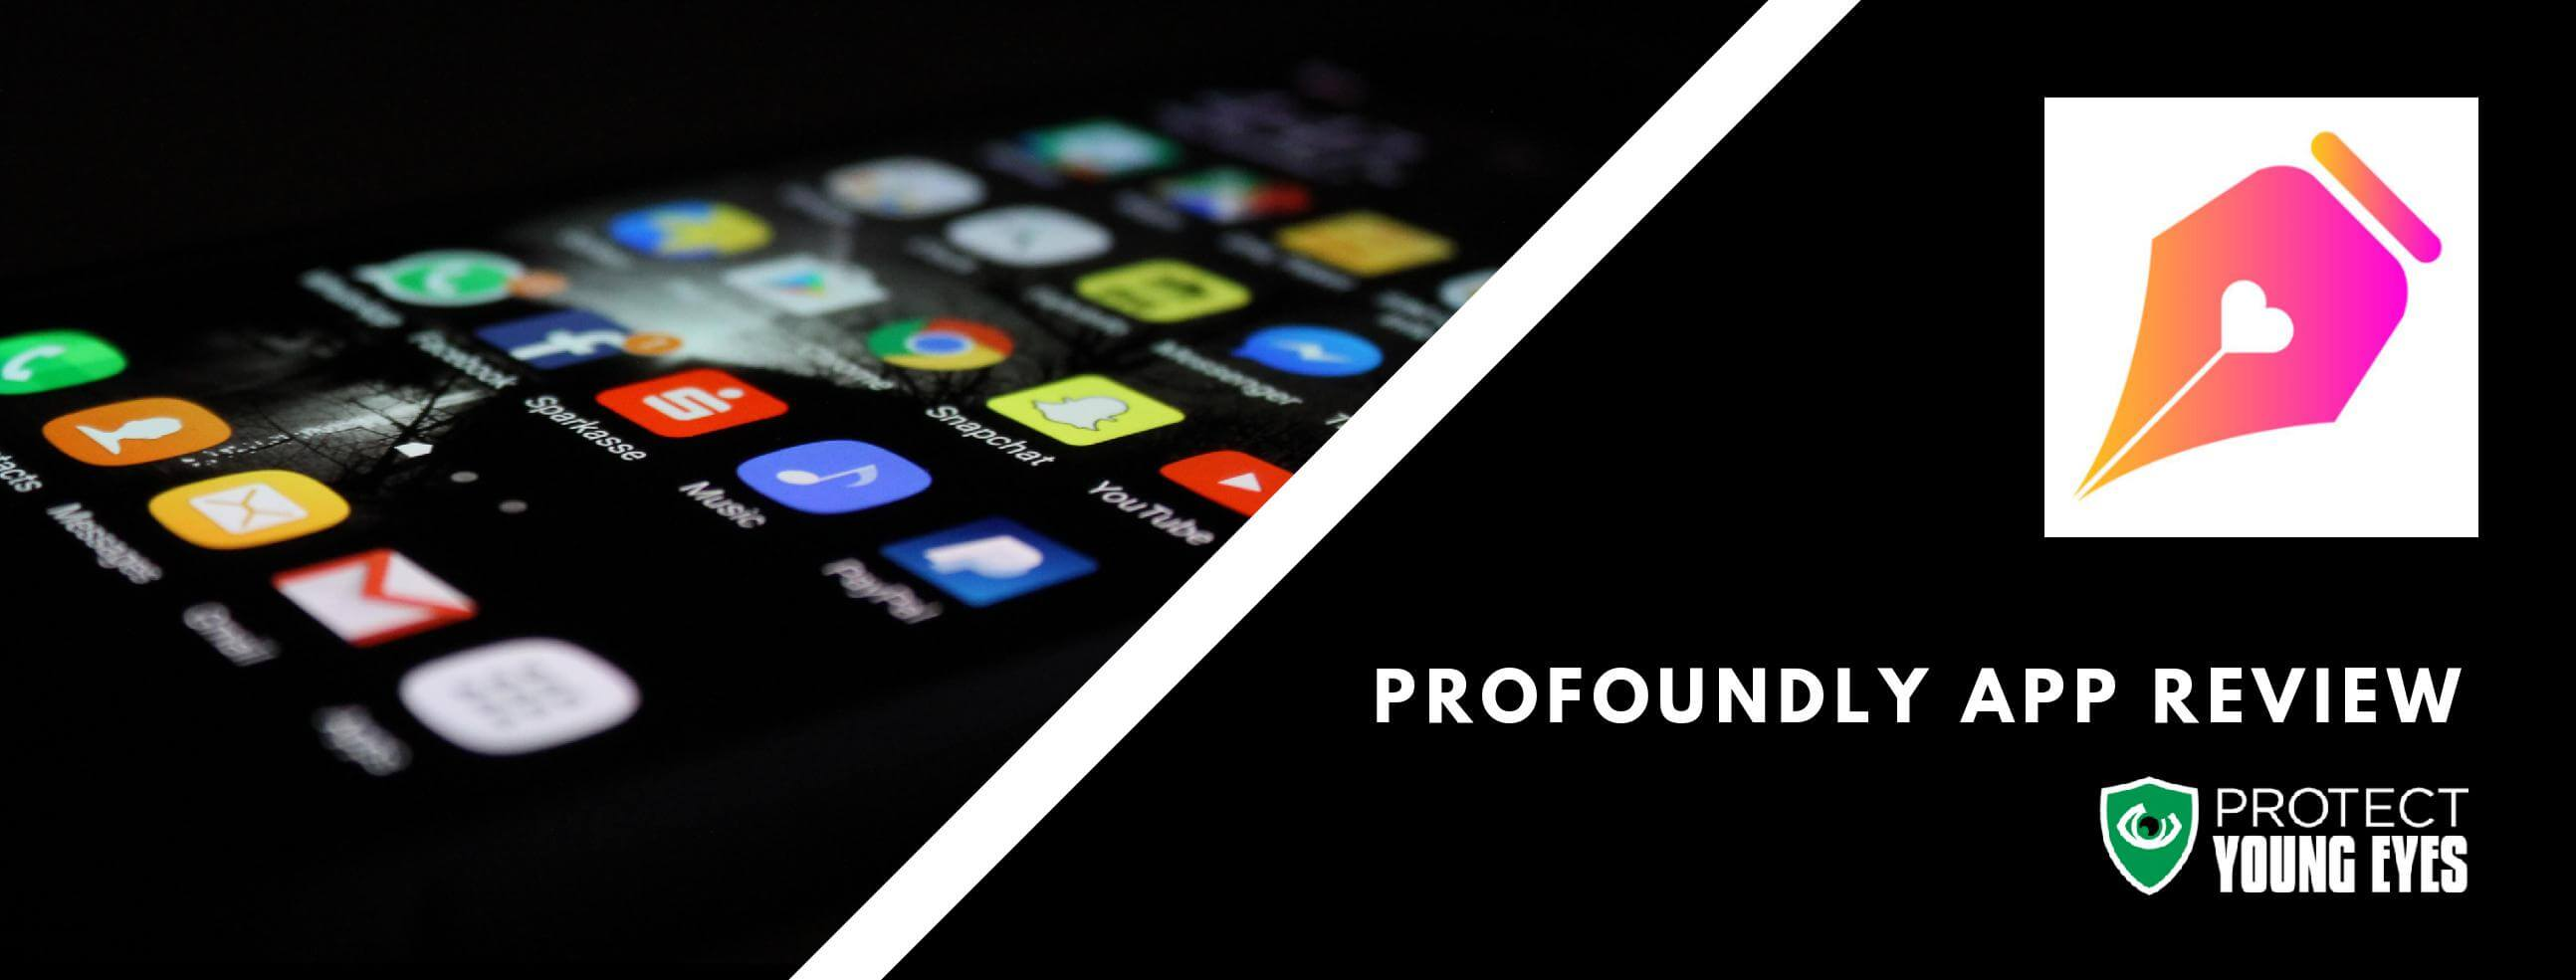 Profoundly: Anonymous Chat App Review - Protect Young Eyes